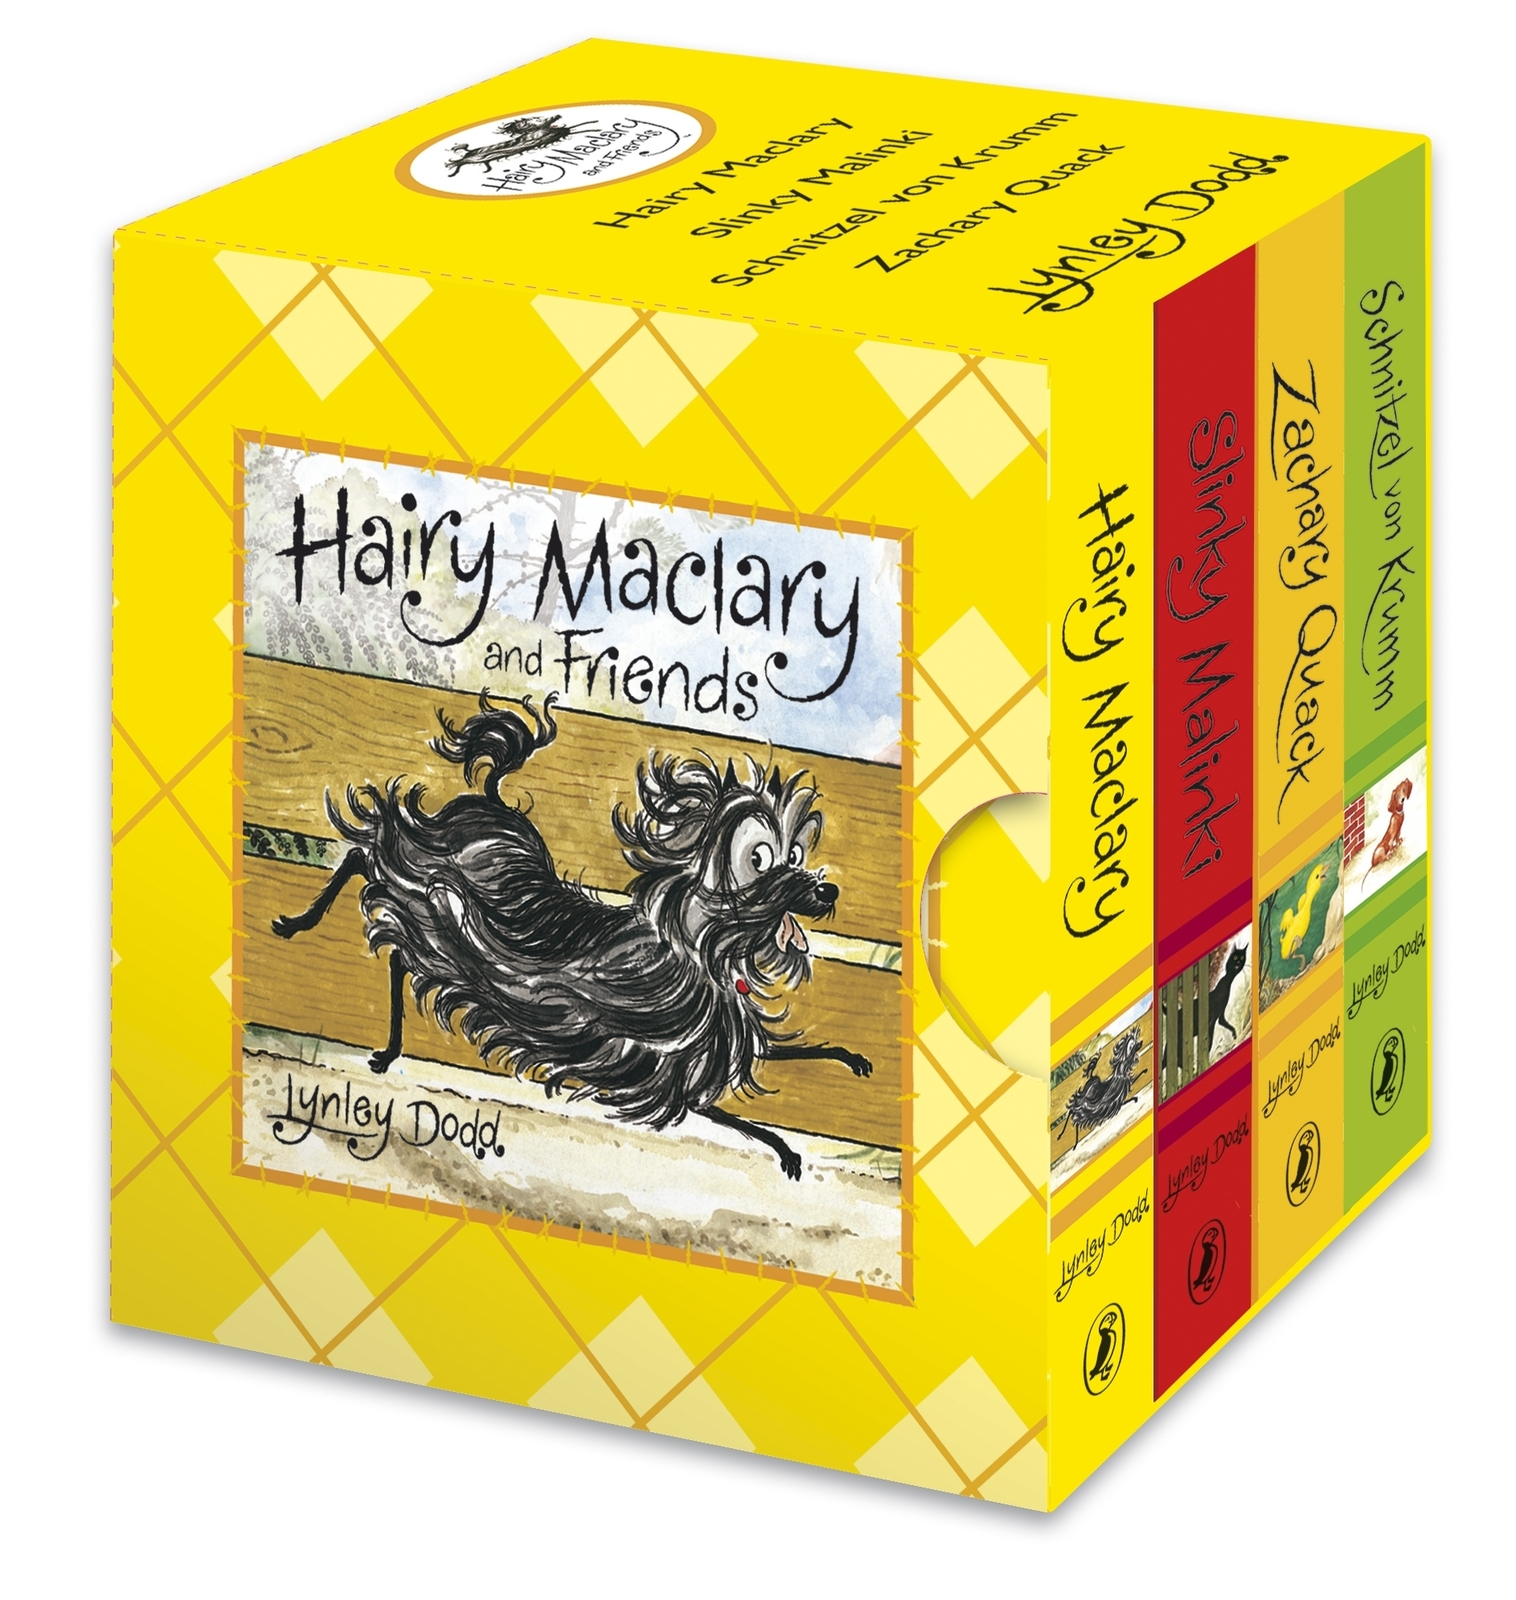 Hairy Maclary and Friends Little Library Boxed Set (4 Board Books) by Lynley Dodd image